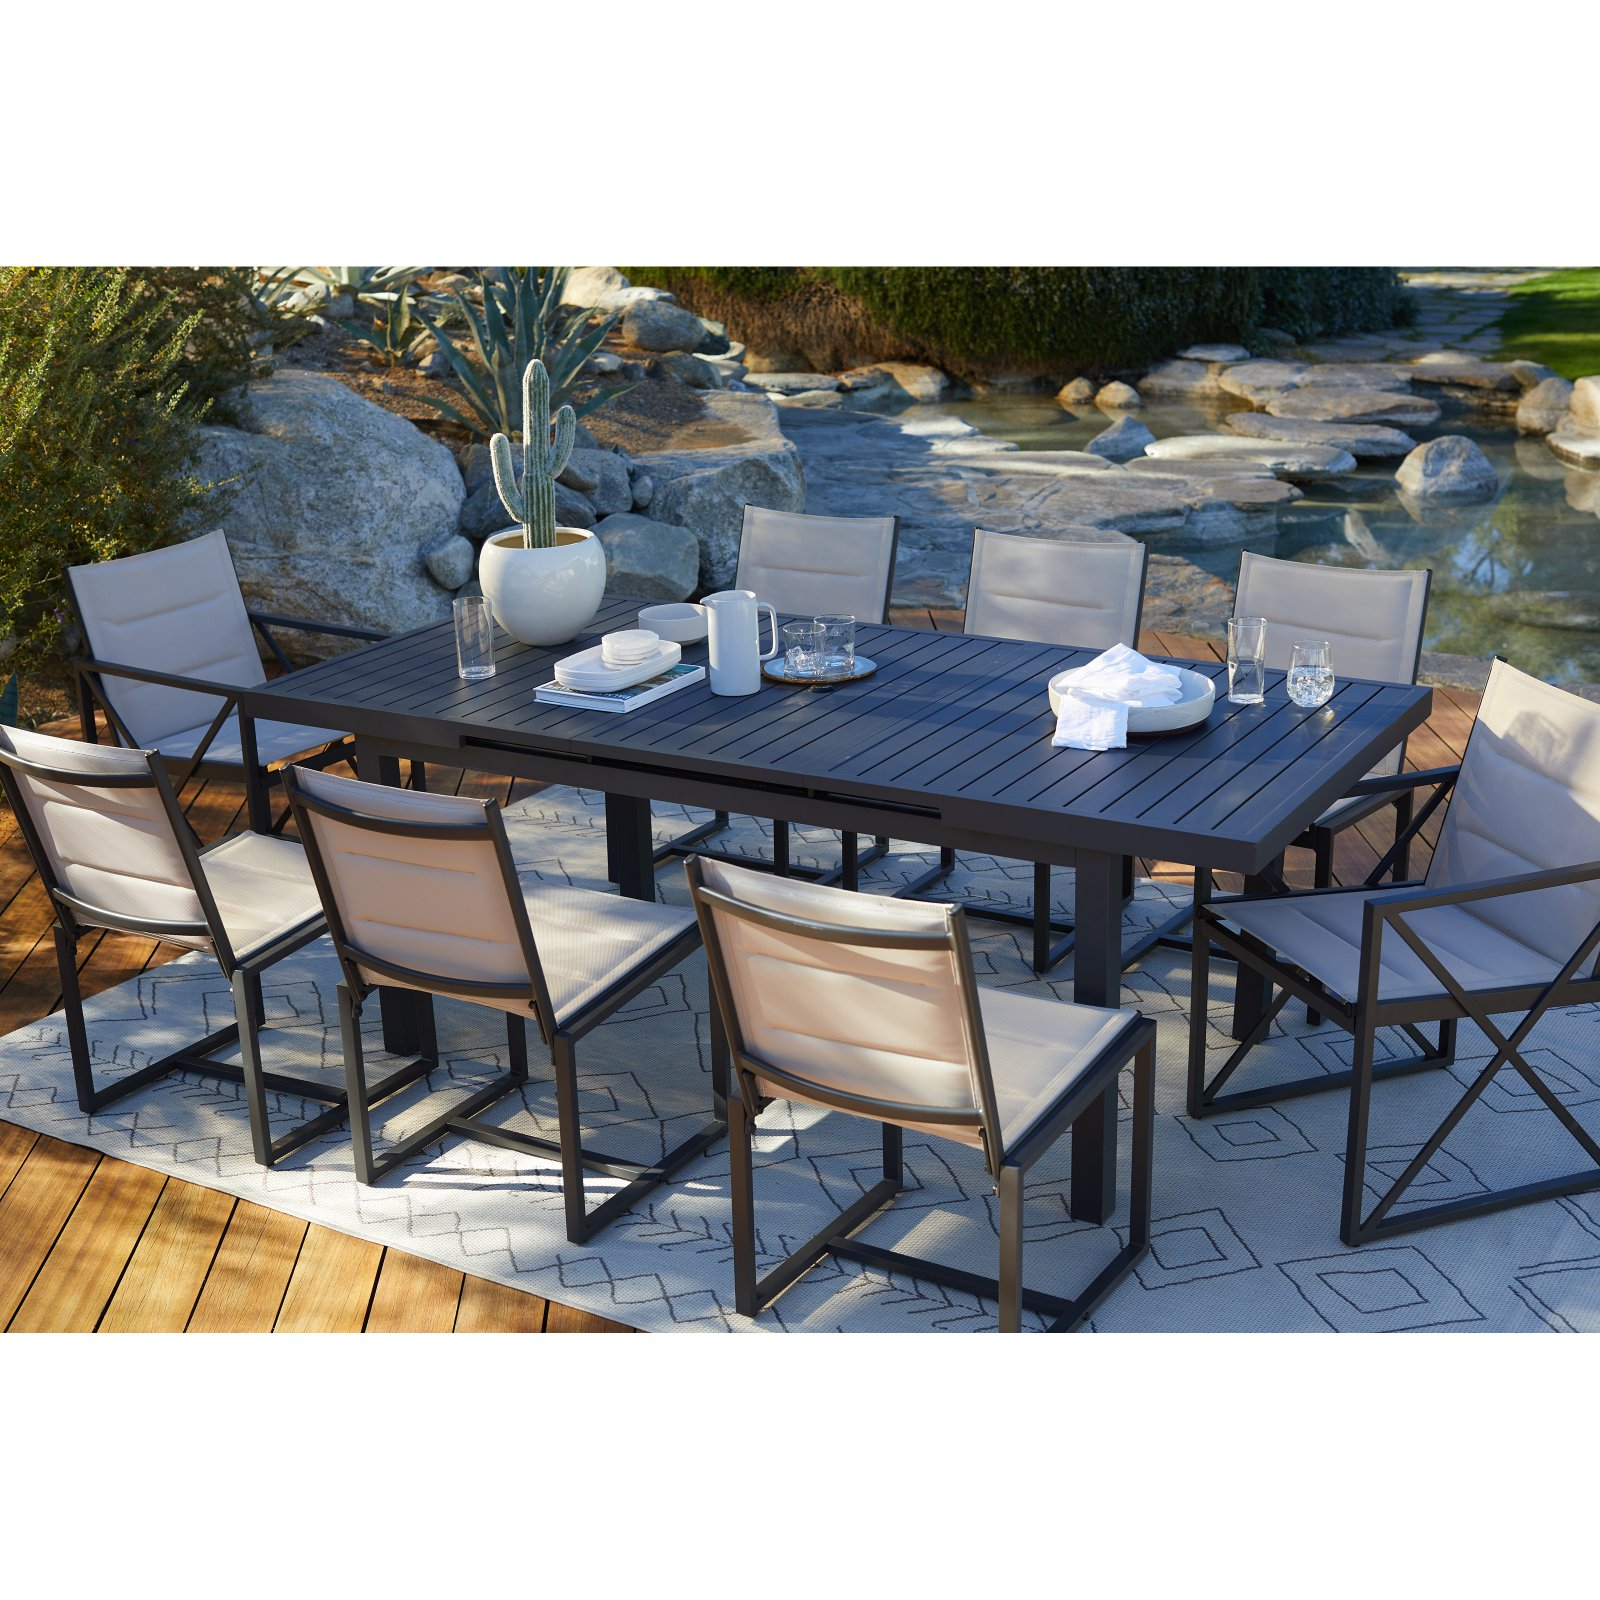 Coral Coast Carano Padded Sling Outdoor Dining Set Patio